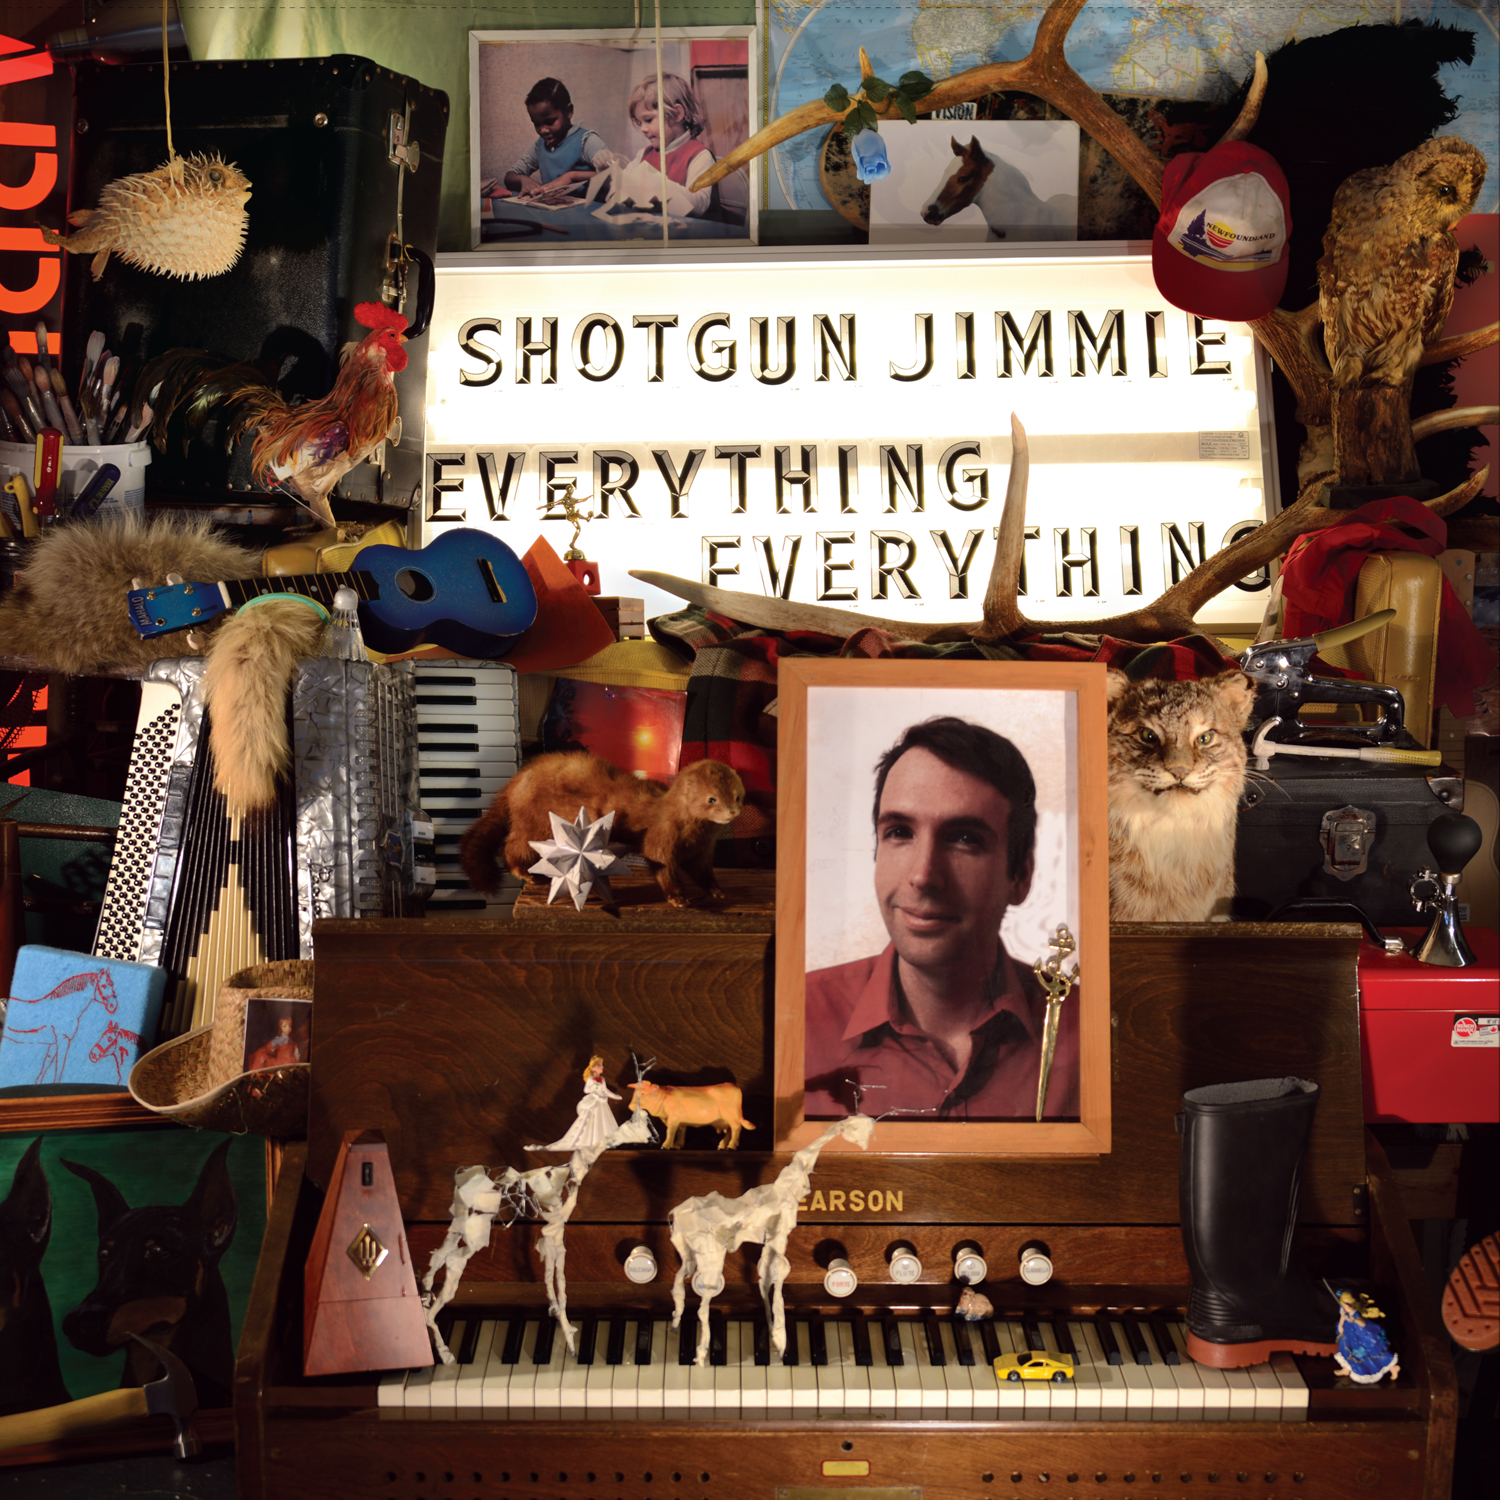 Shotgun Jimmie Everything Everything